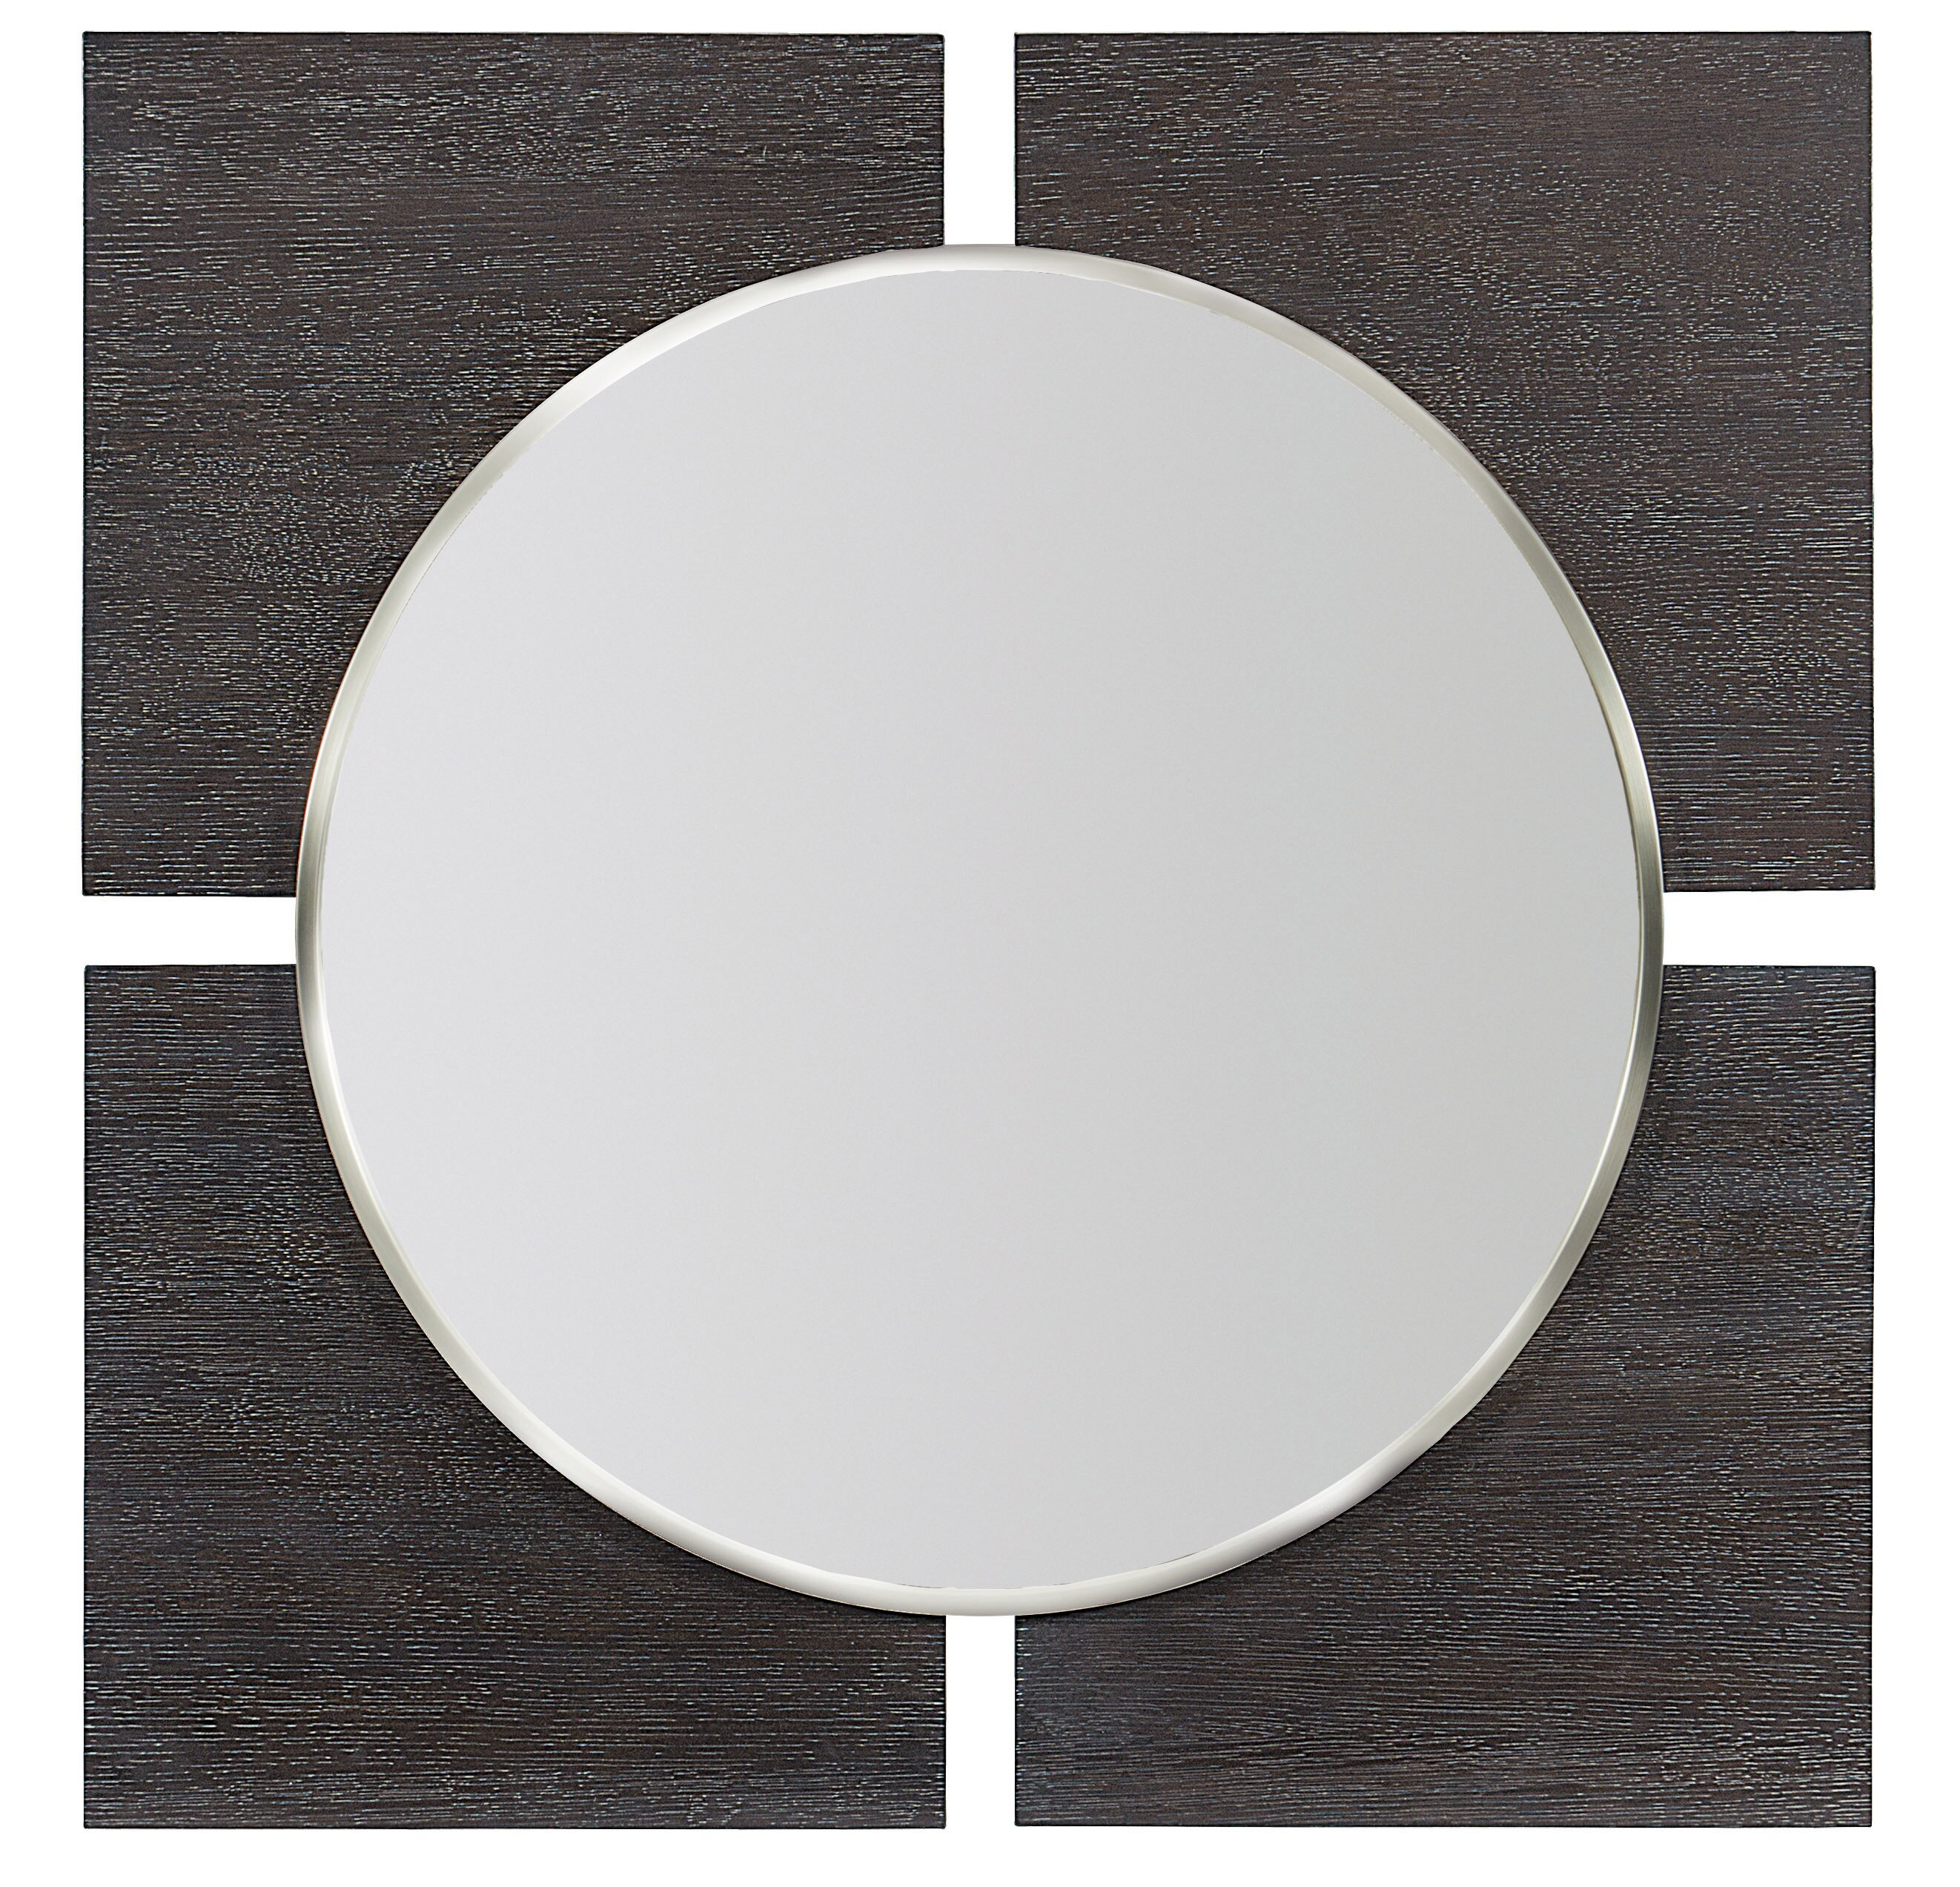 Decorage Modern And Contemporary Accent Mirror Intended For Astrid Modern & Contemporary Accent Mirrors (View 3 of 20)